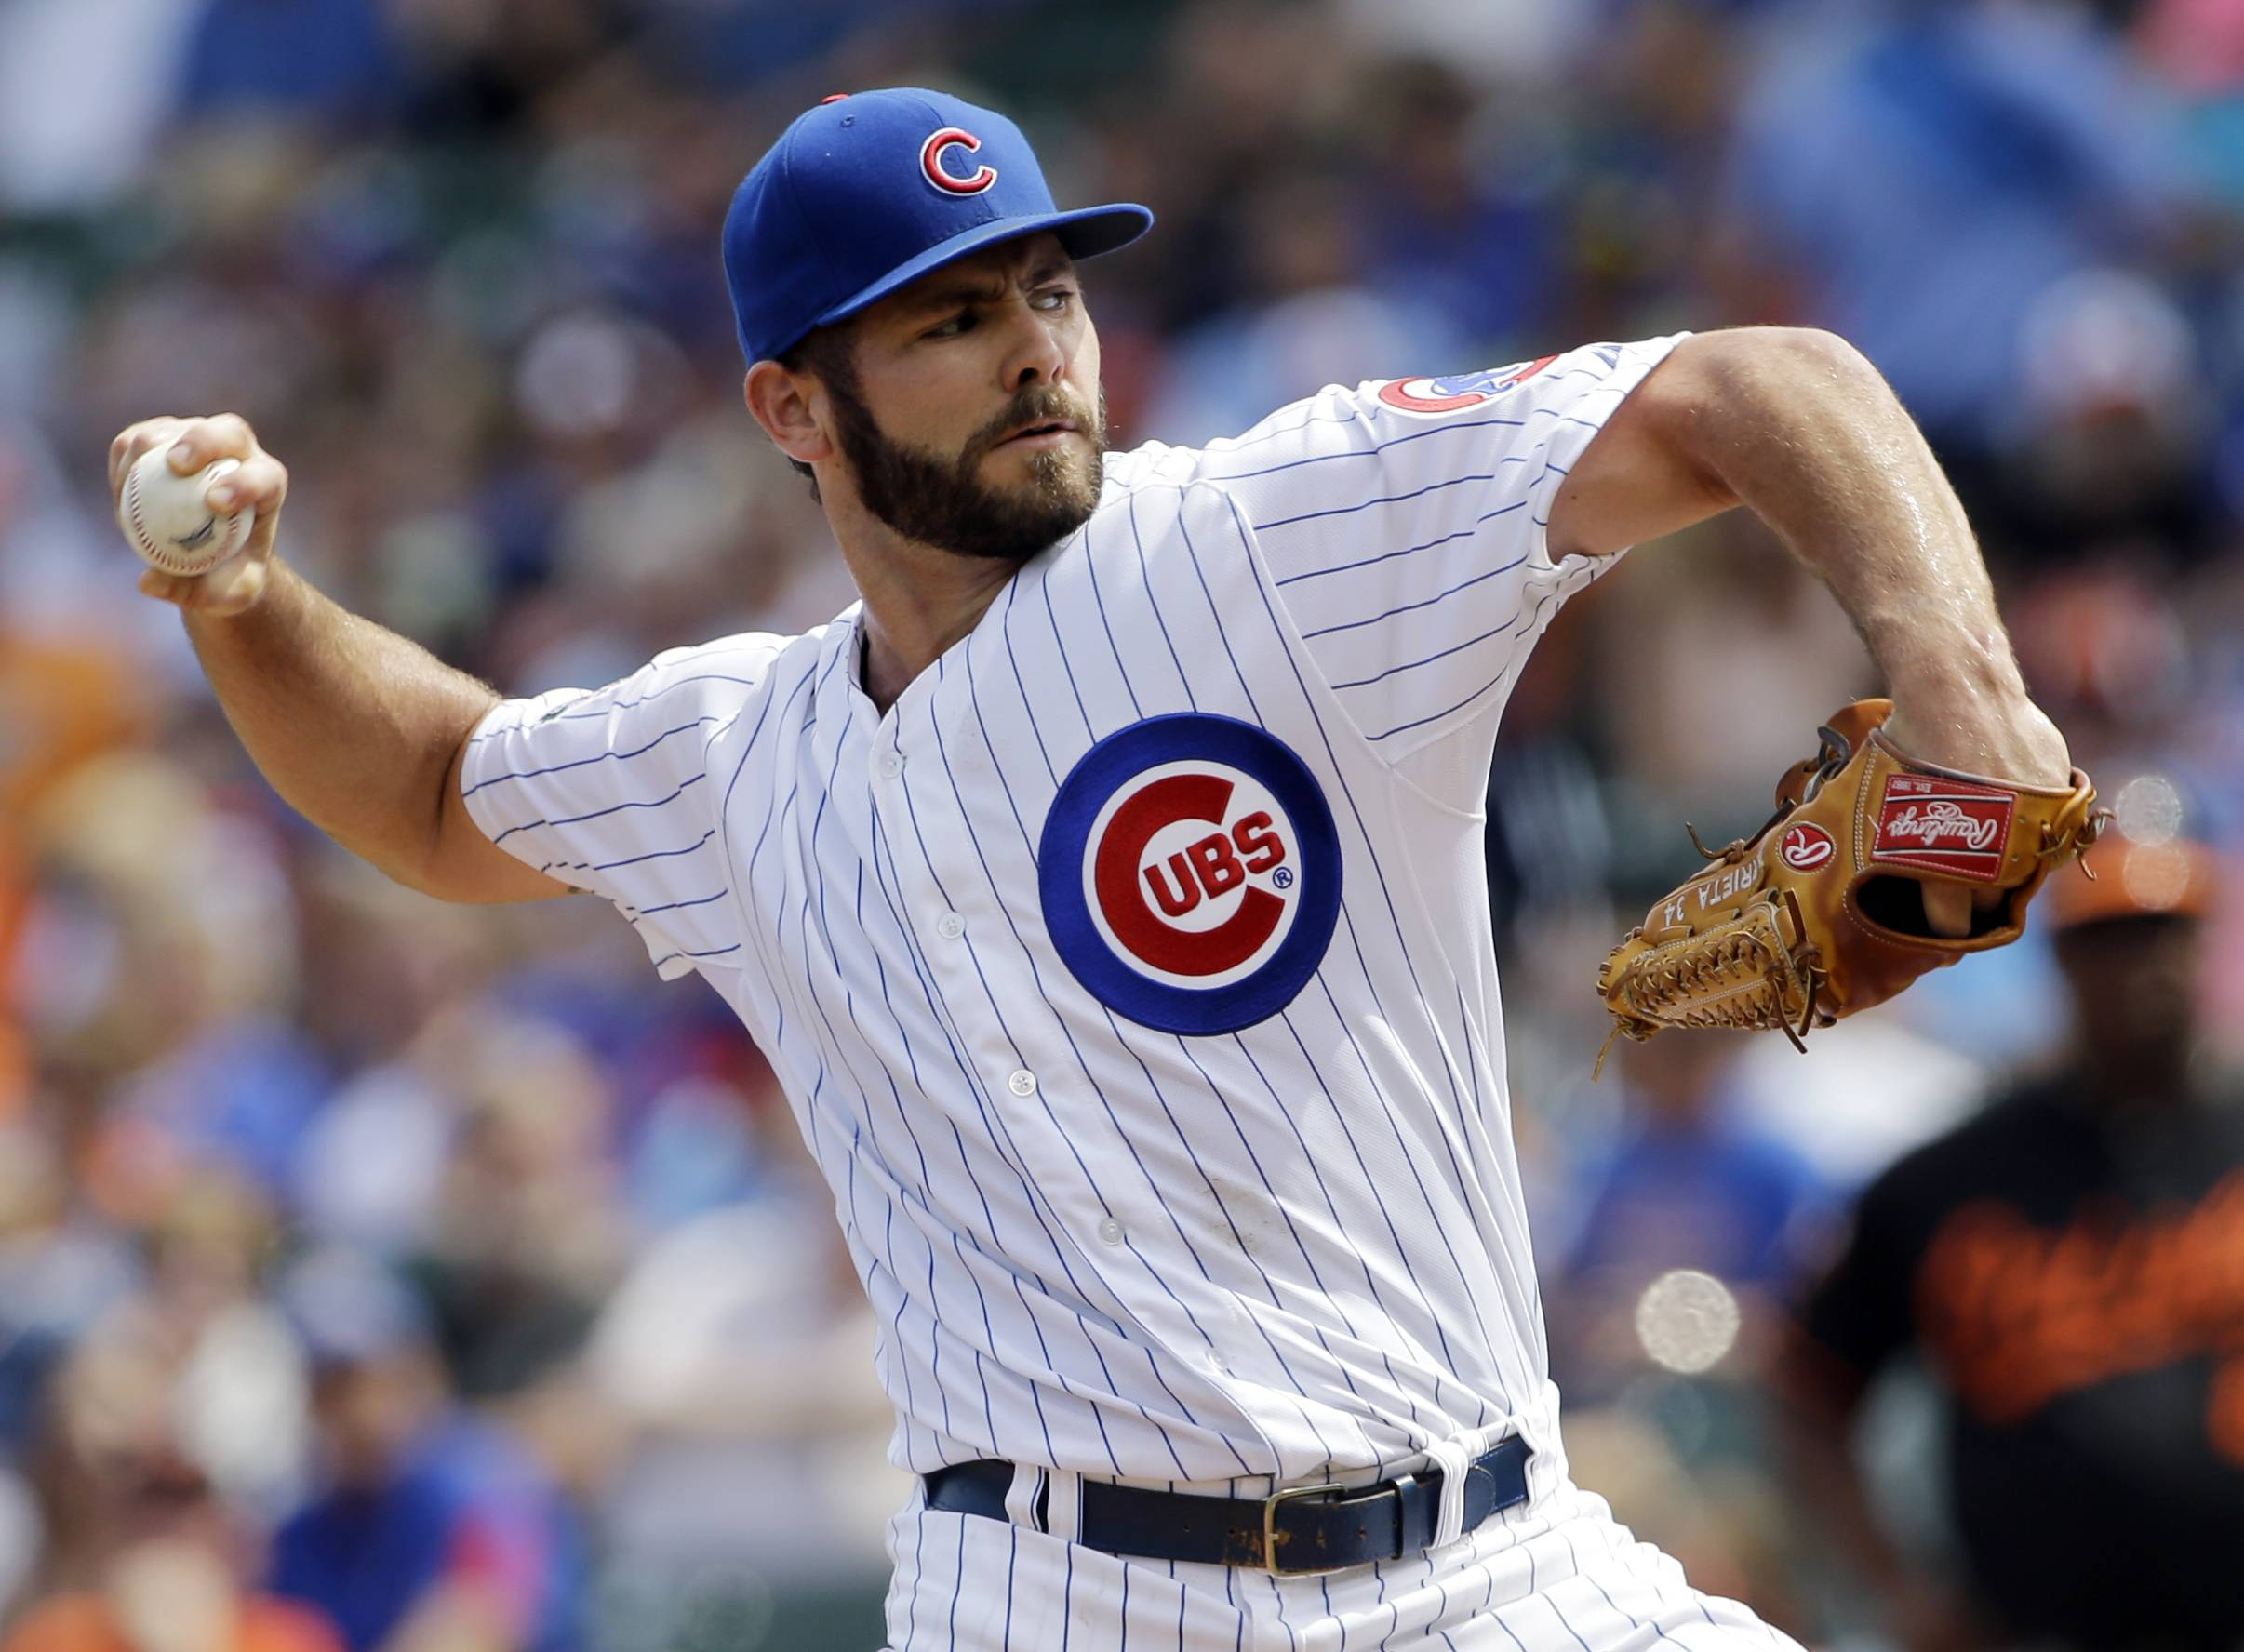 Facing his former team, Jake Arrieta allowed just 1 run on 4 hits in 7 innings as the Cubs beat the Orioles.